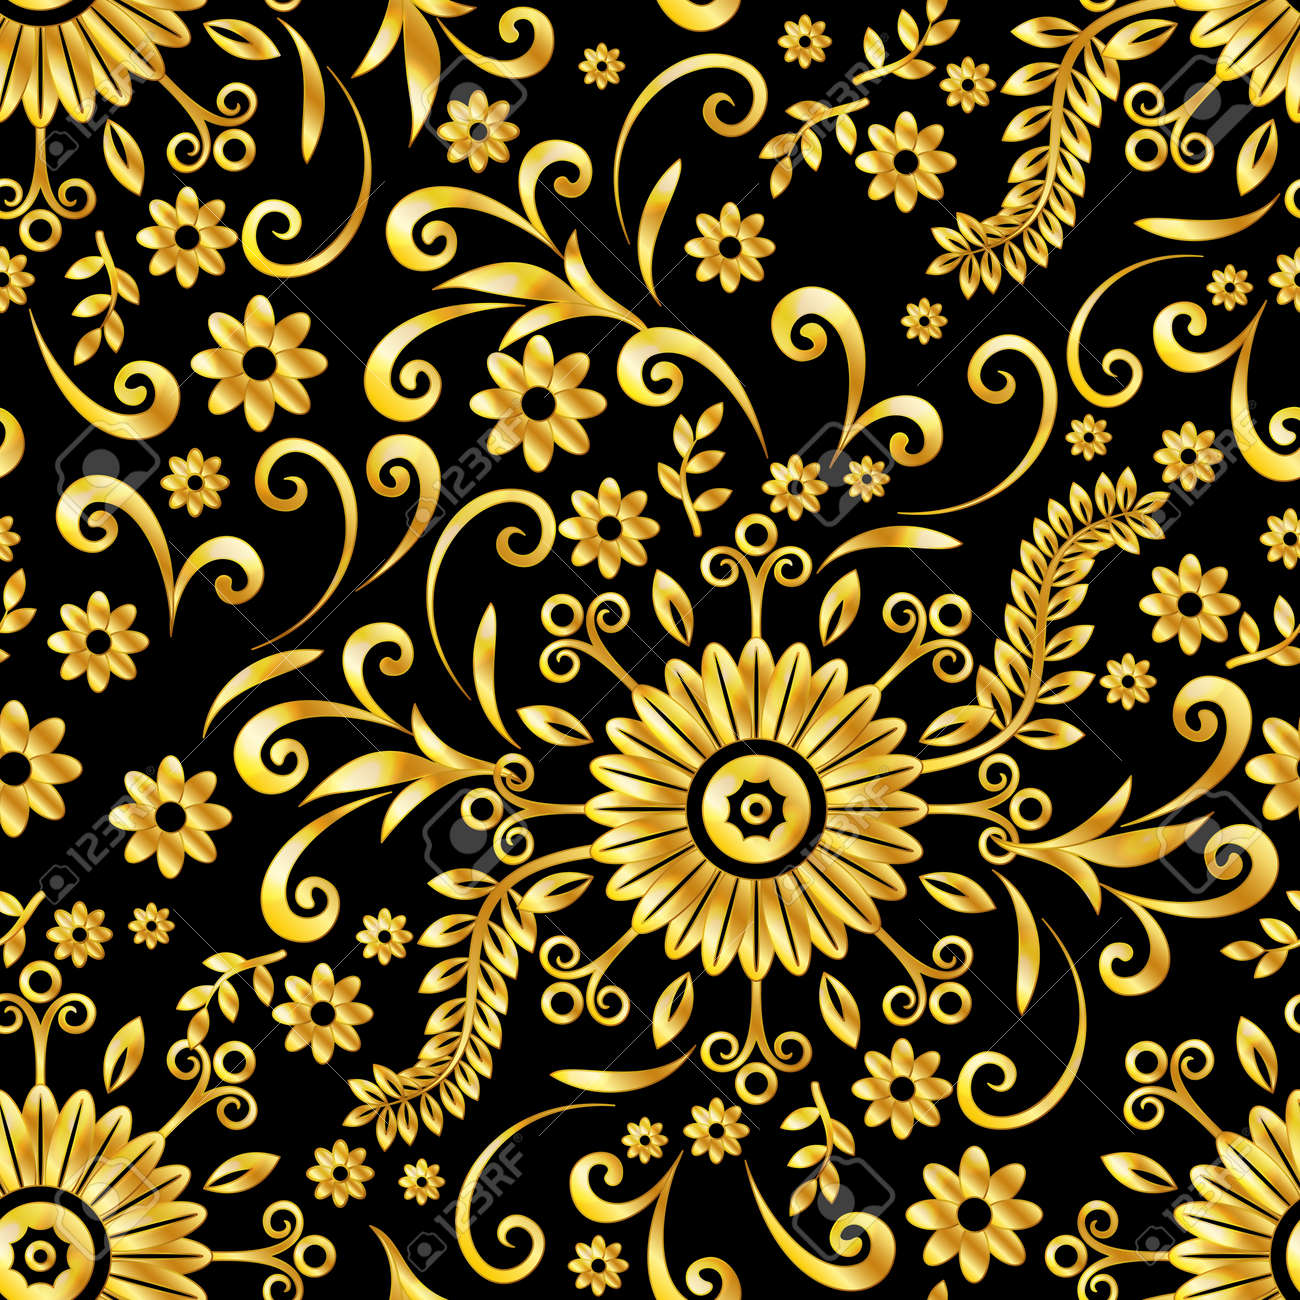 Abstract Seamless Background With Symbolical Gold Floral Patterns